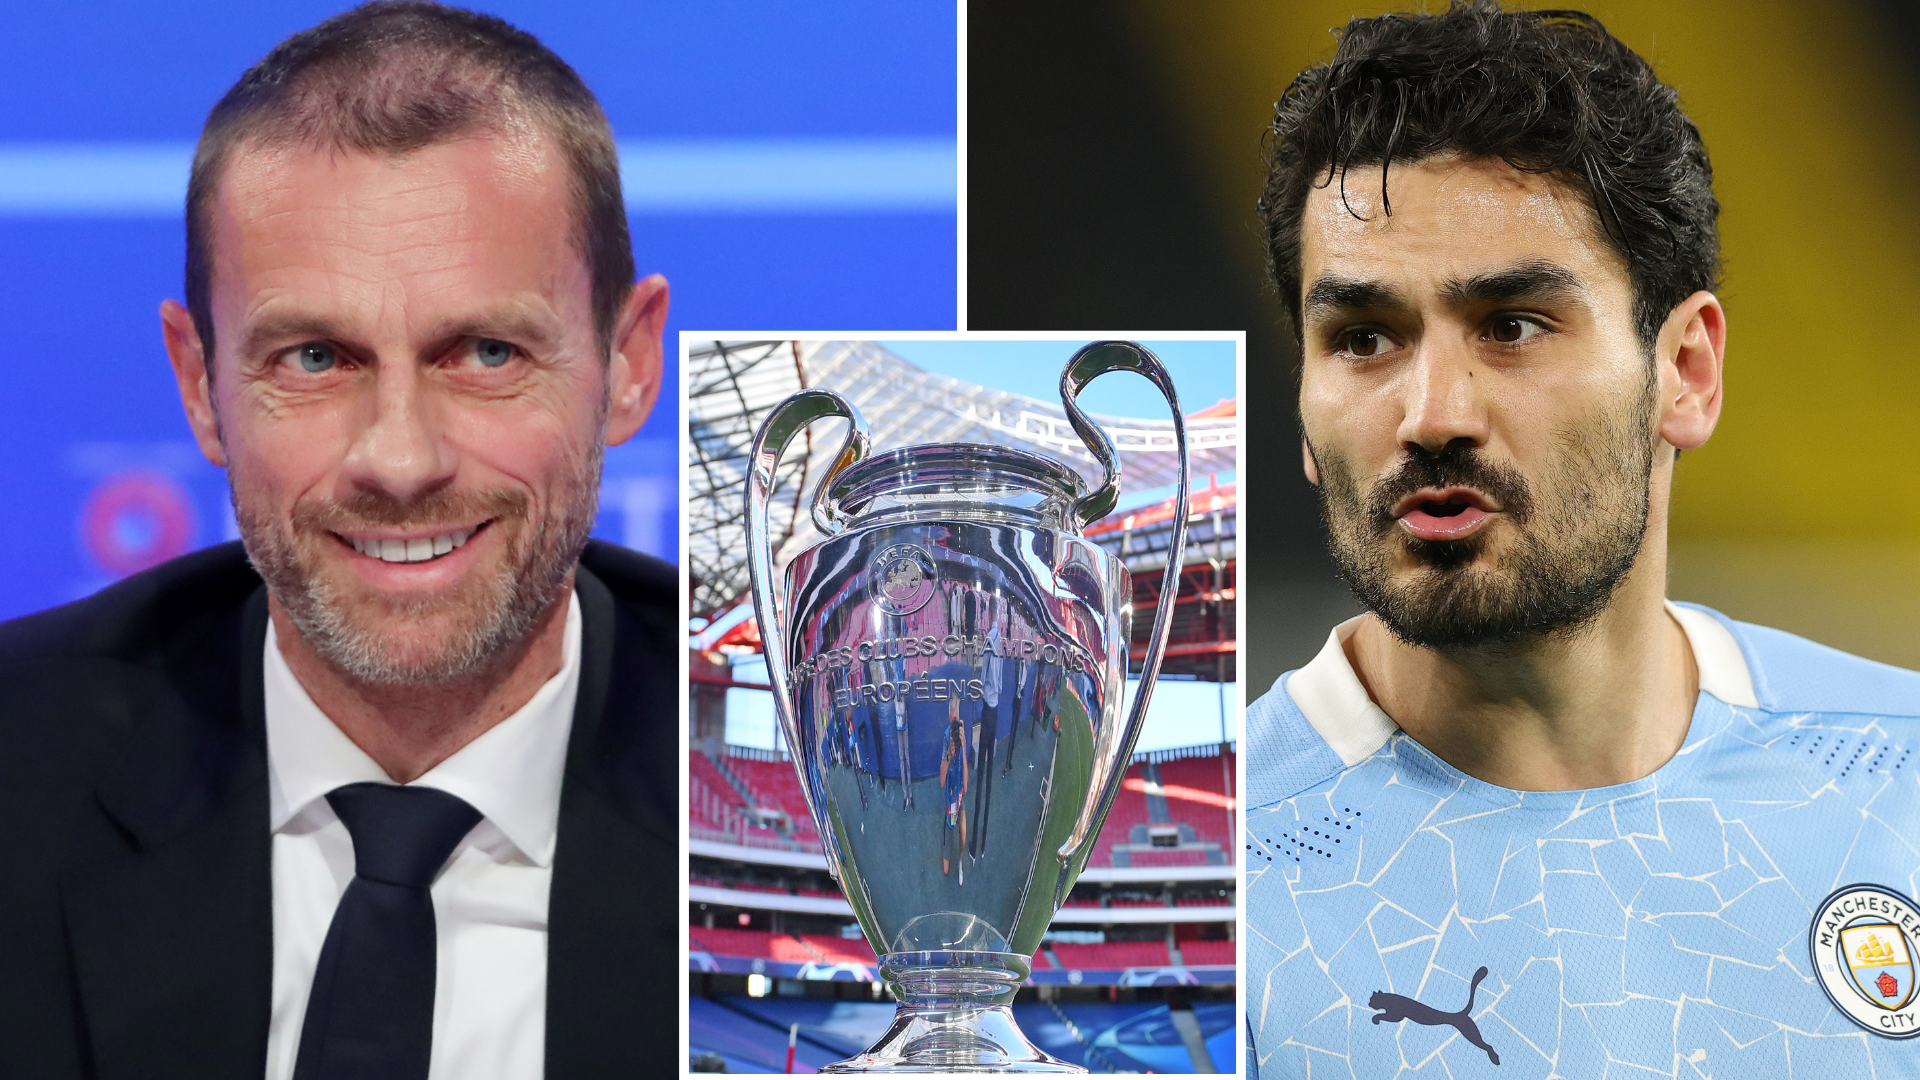 Manchester City Star Ilkay Gundogan Drops Passionate Rant Against New Champions League Format